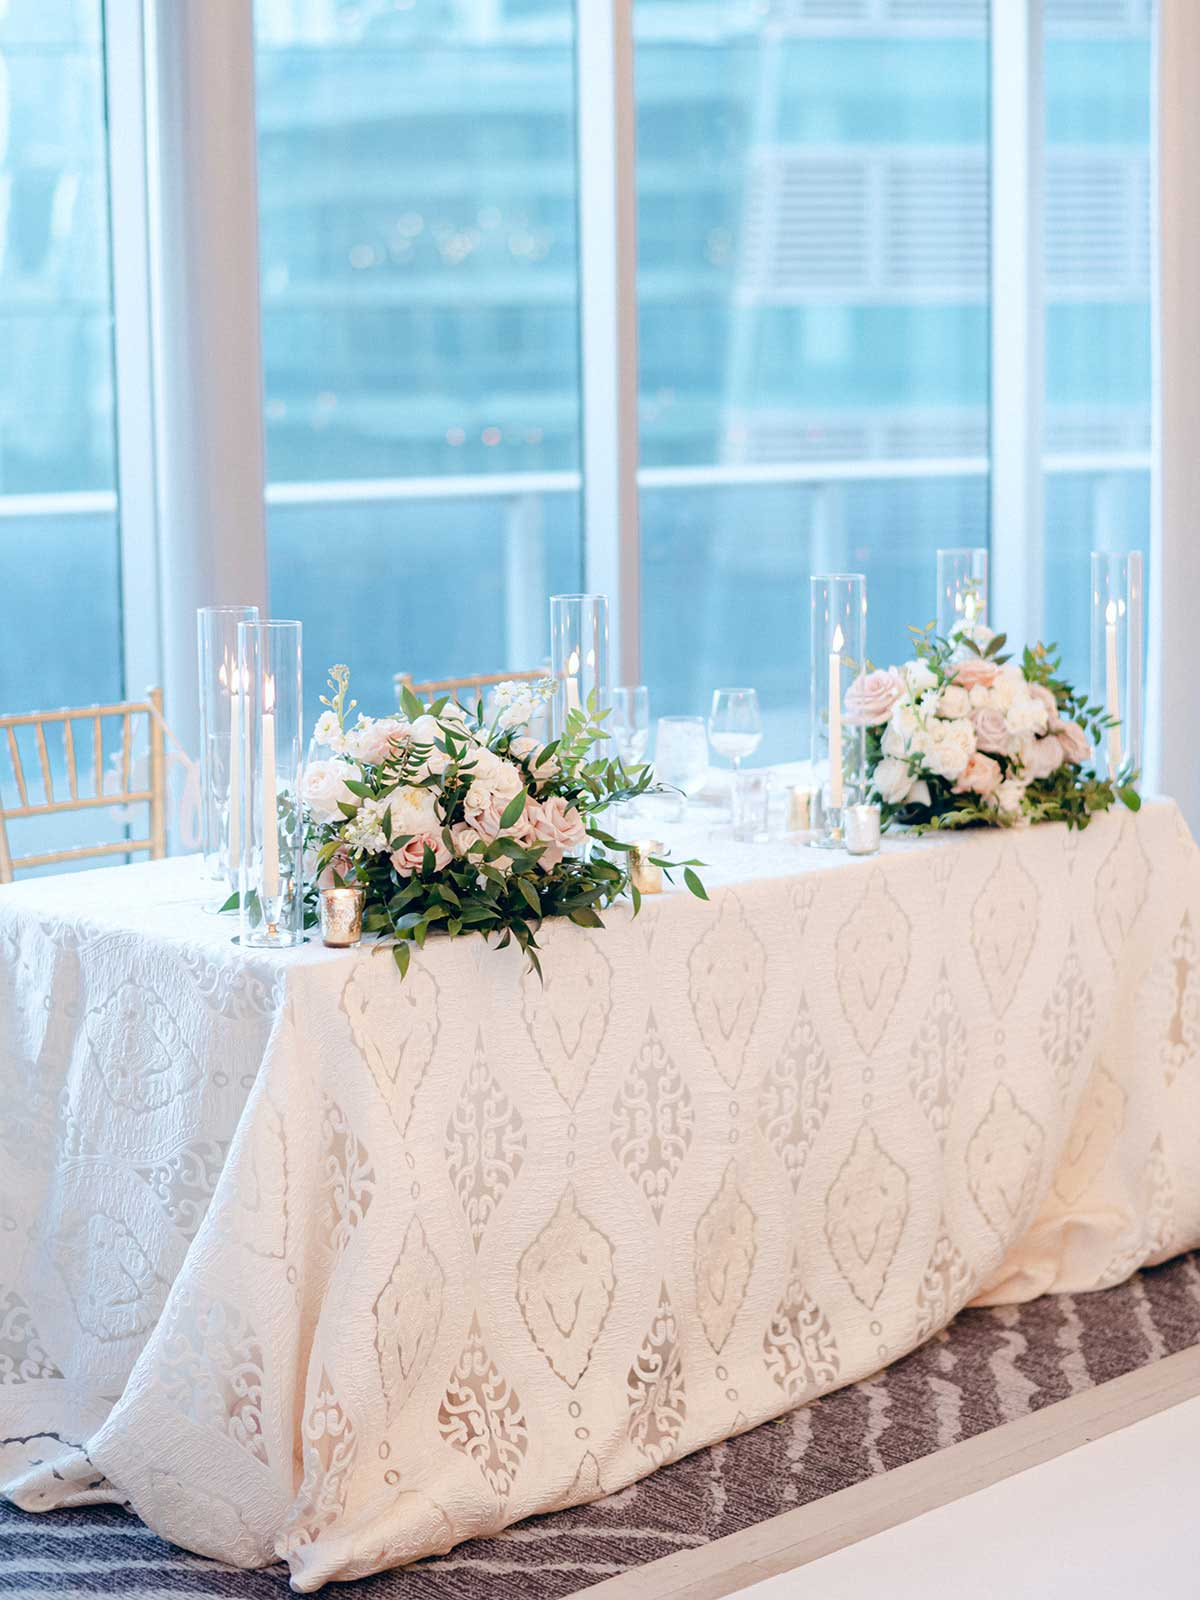 head table with white lace table cloth and floral centerpieces.